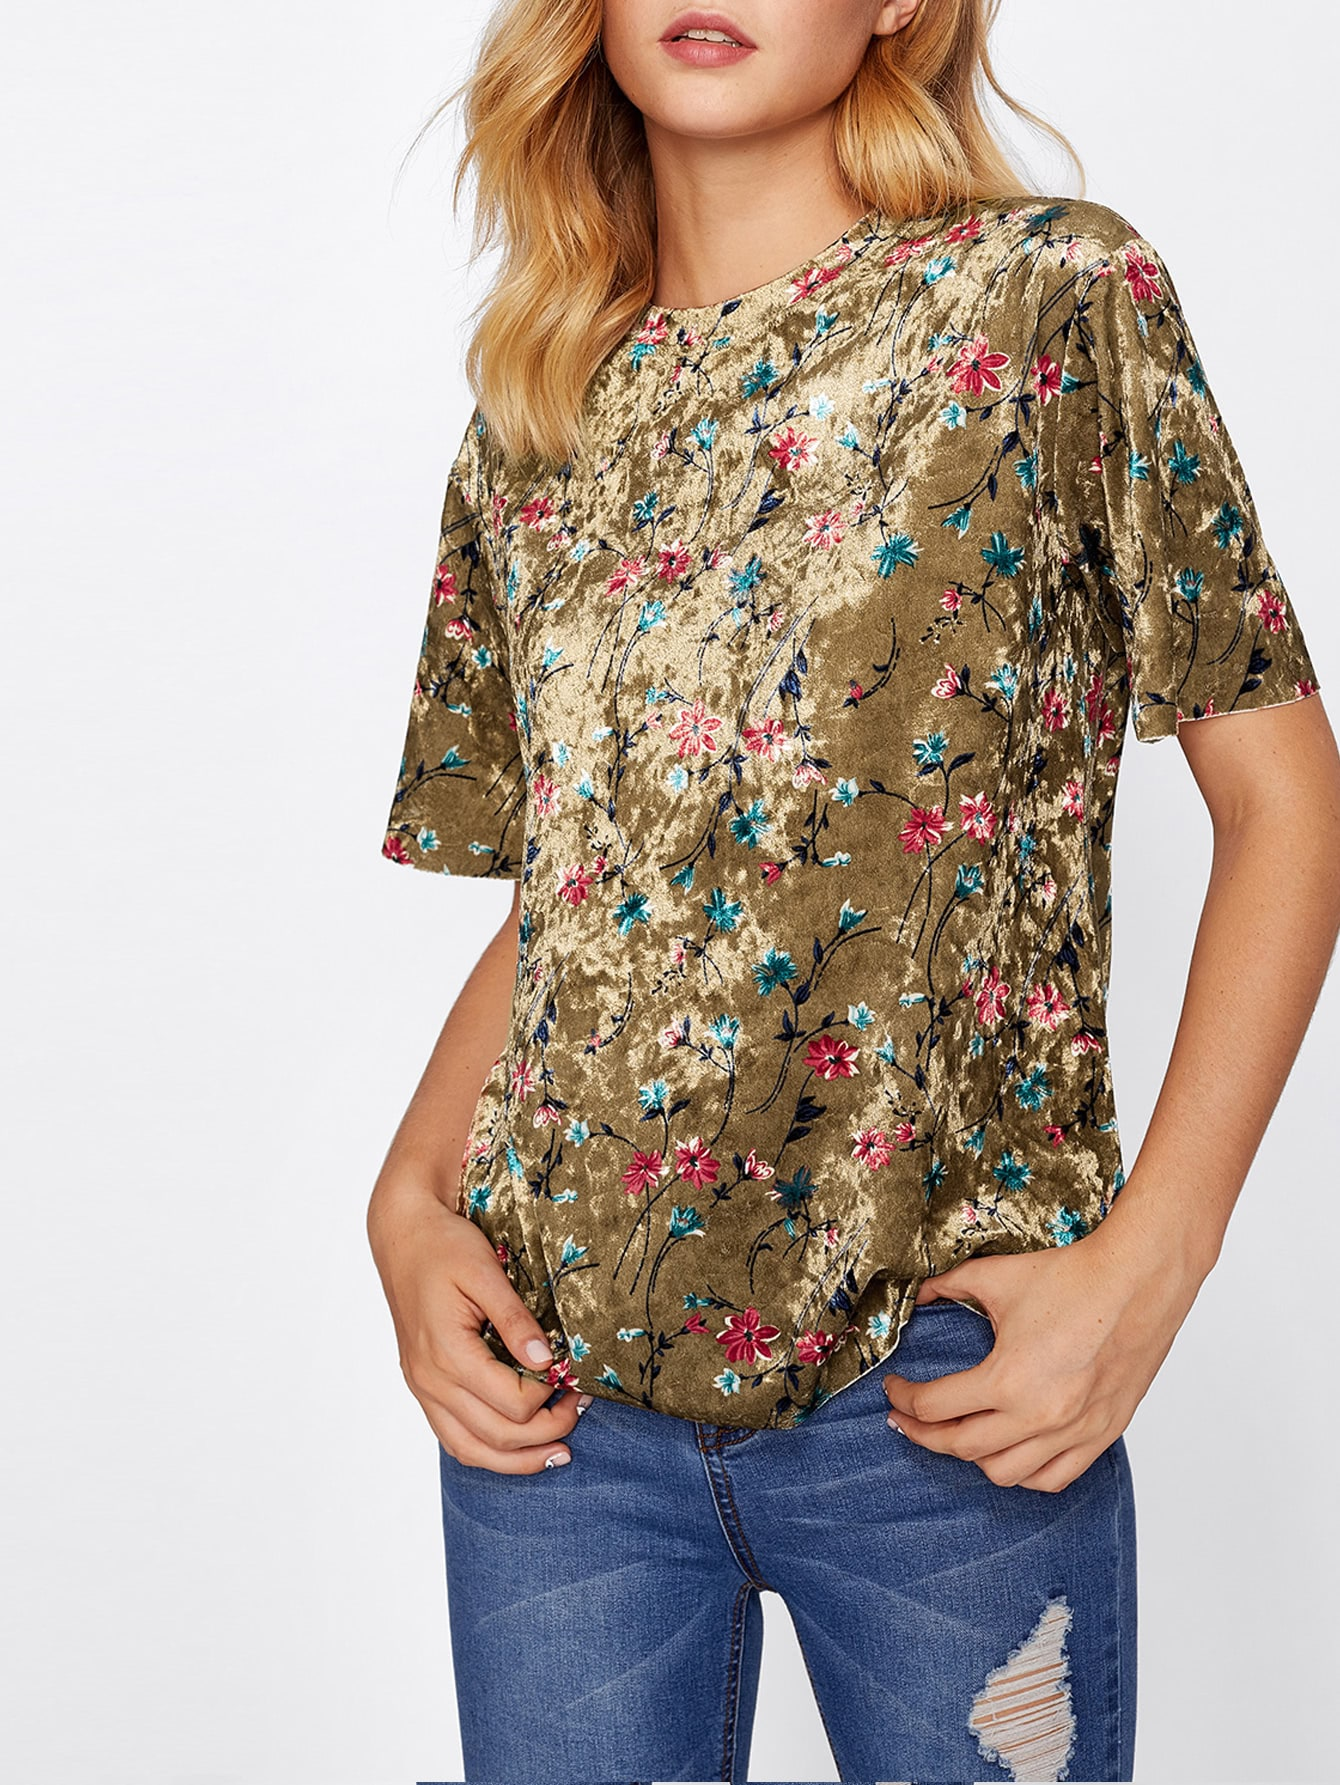 Botanical Crushed Velvet Top tee170901701